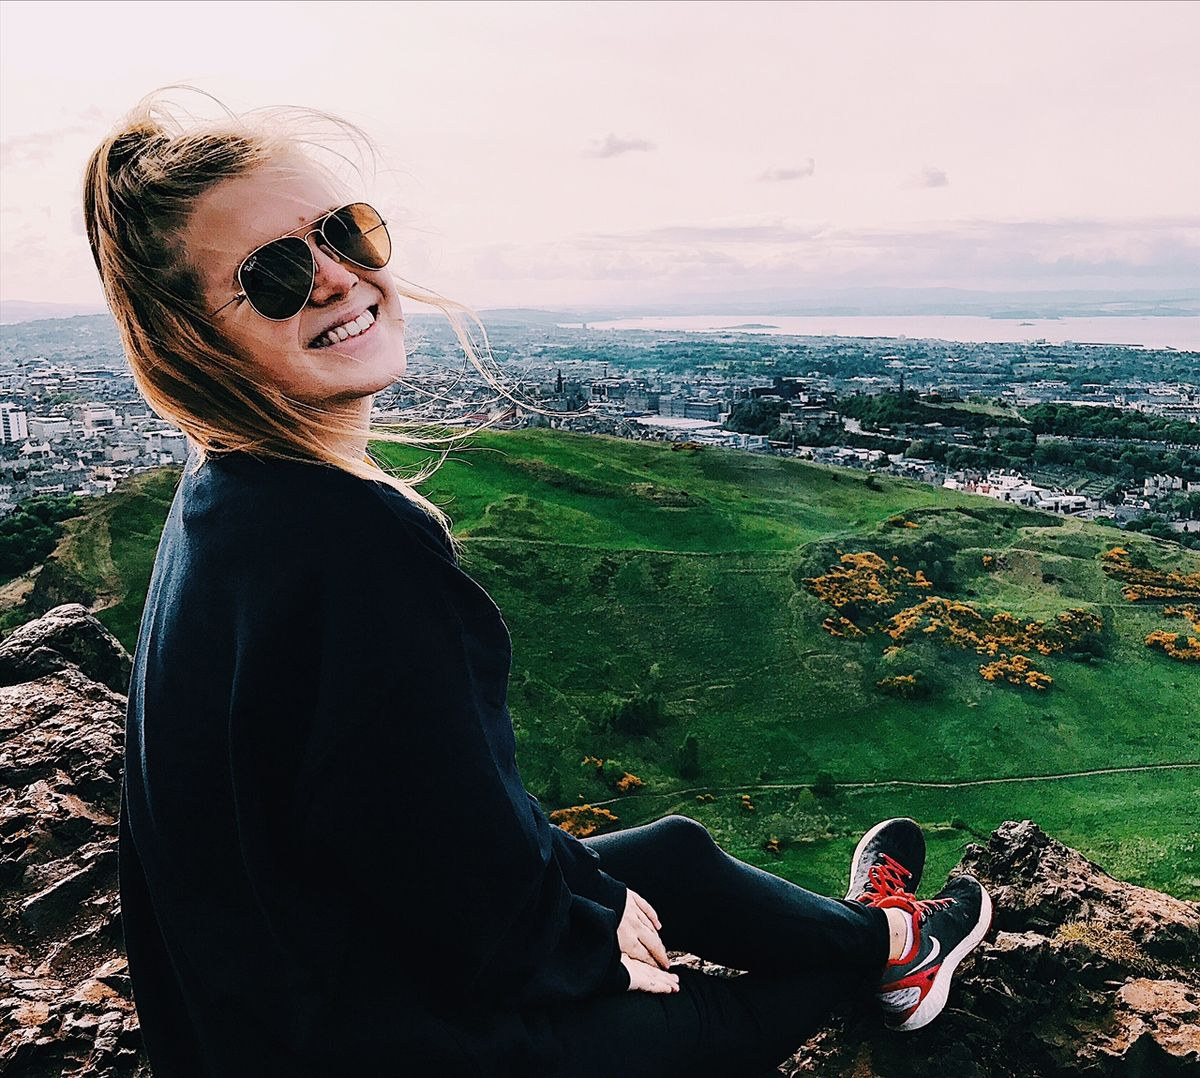 5 Things I Learned While Studying Abroad